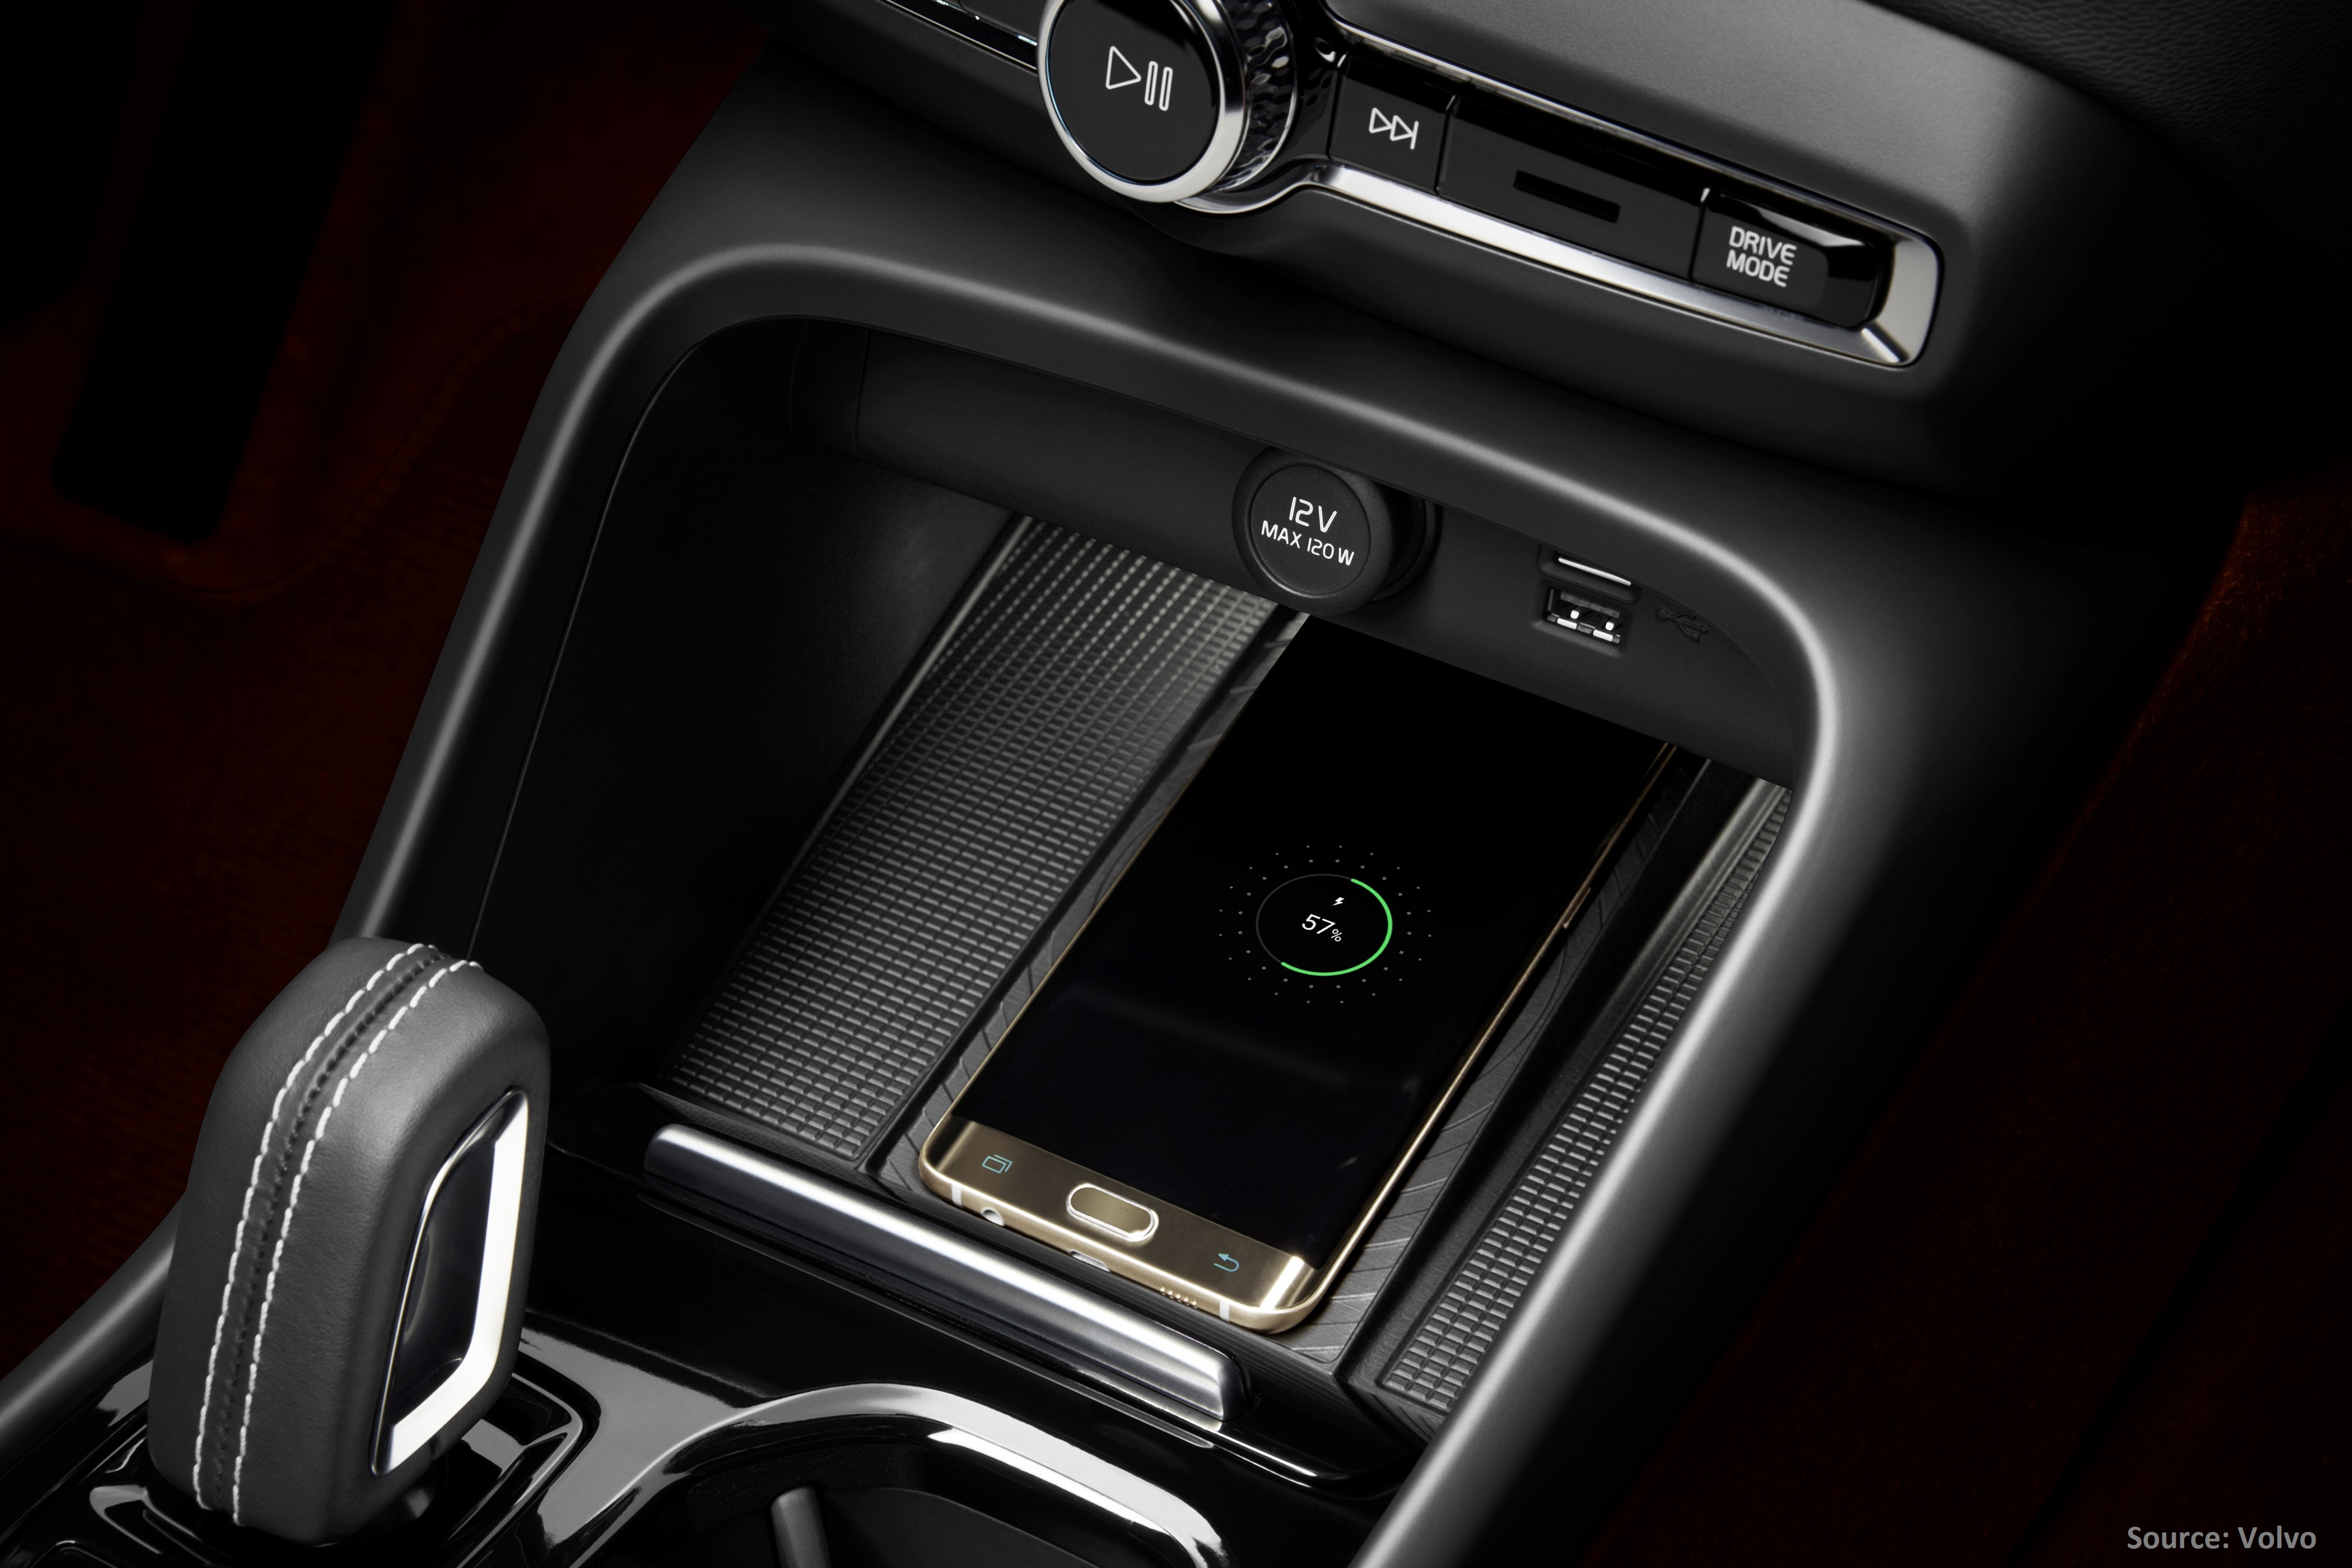 Volvo wireless charging Aircharge